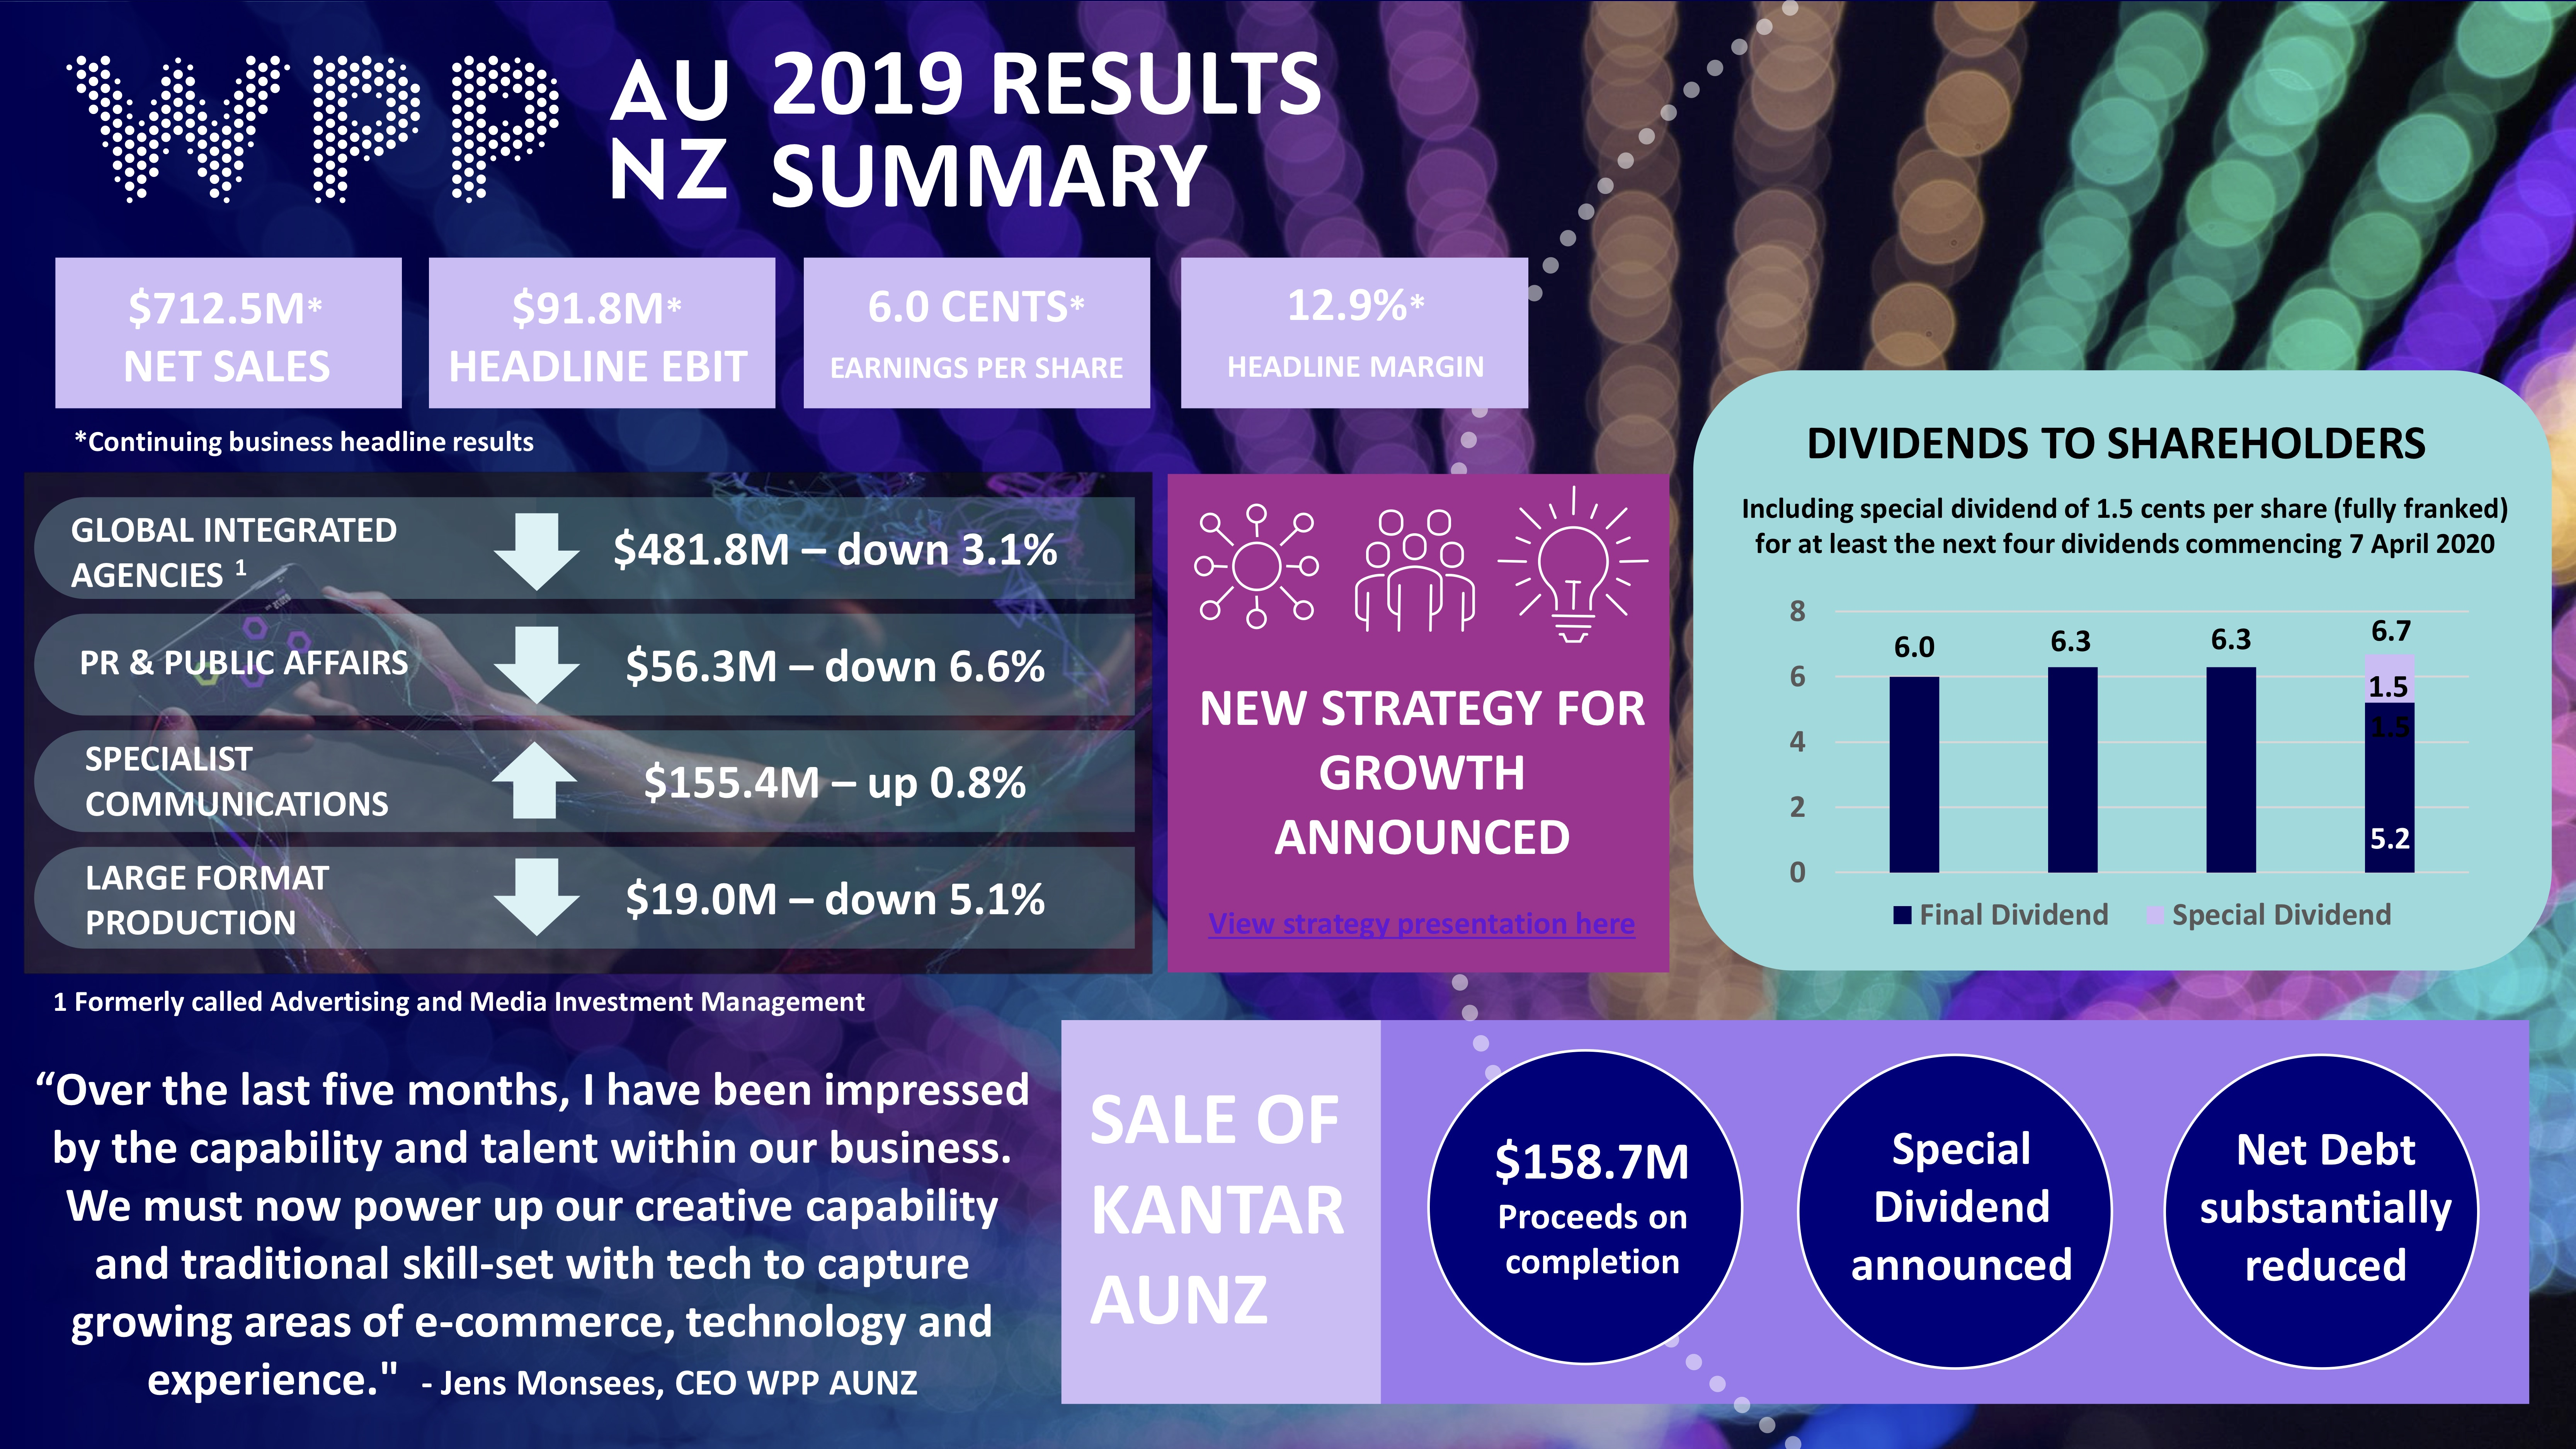 WPP AUNZ releases 2019 full year results and strategy for growth